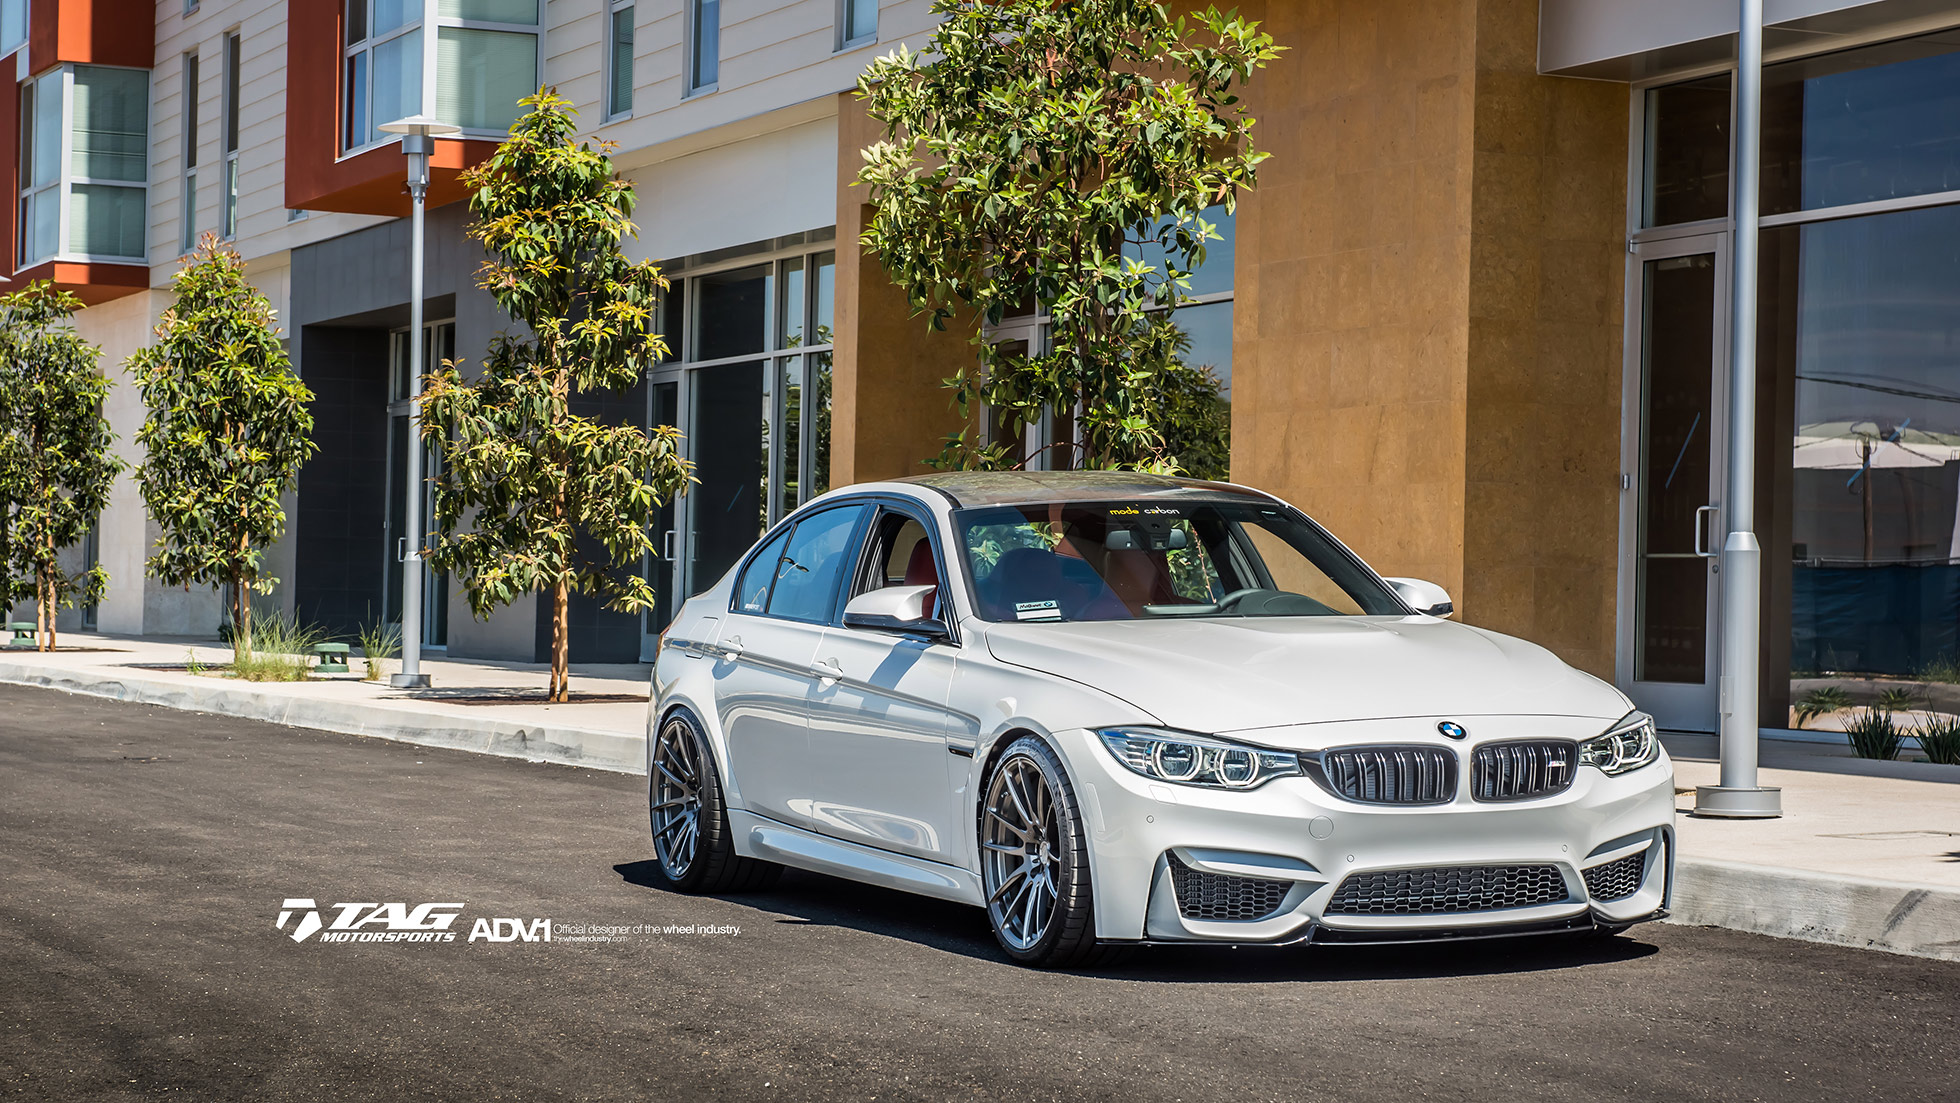 Bmw F80 M3 Gets Treated With Adv 1 Wheels By Tag Motorsports